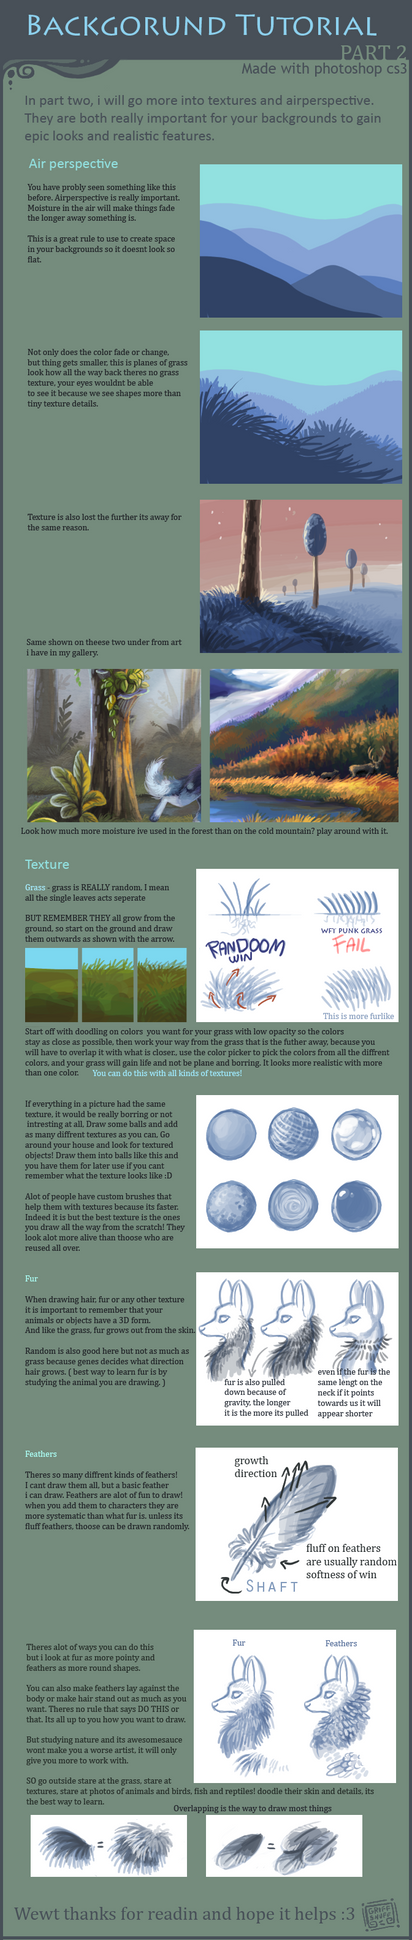 Background tutorial part 2 by griffsnuff on DeviantArt